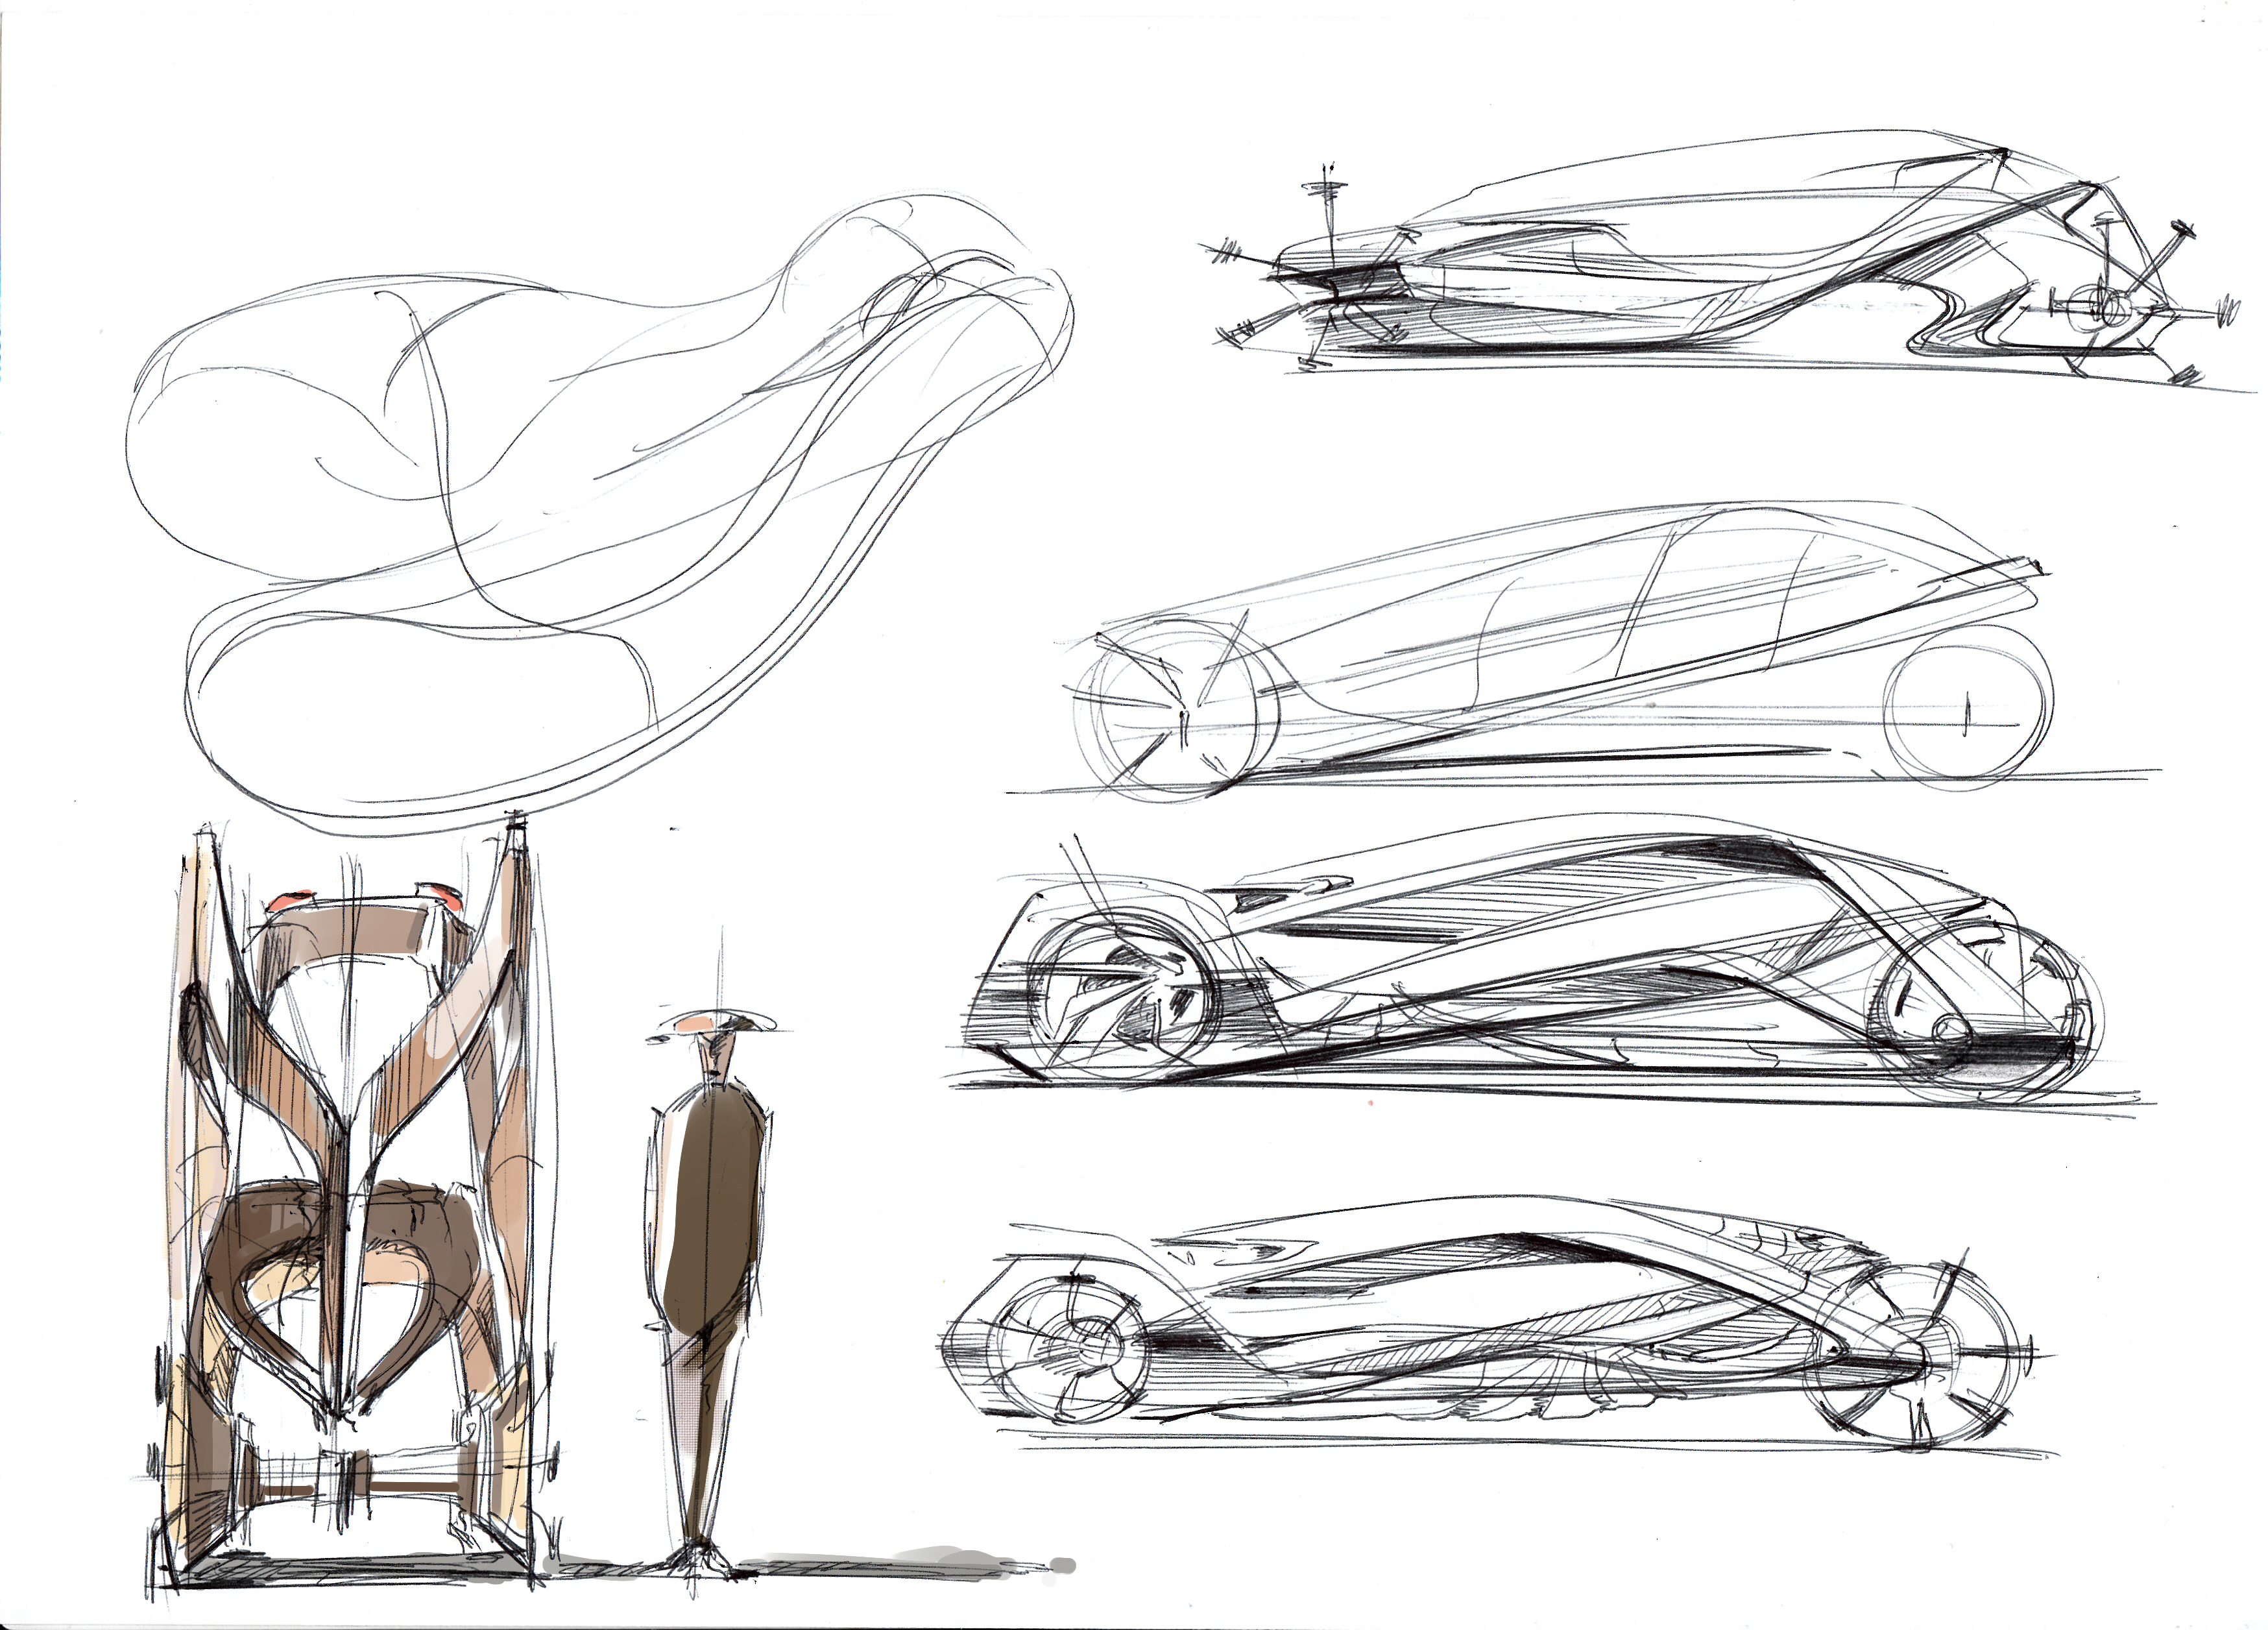 Easy-Drive Concept for Future Urban Life by Kong Shiyuan